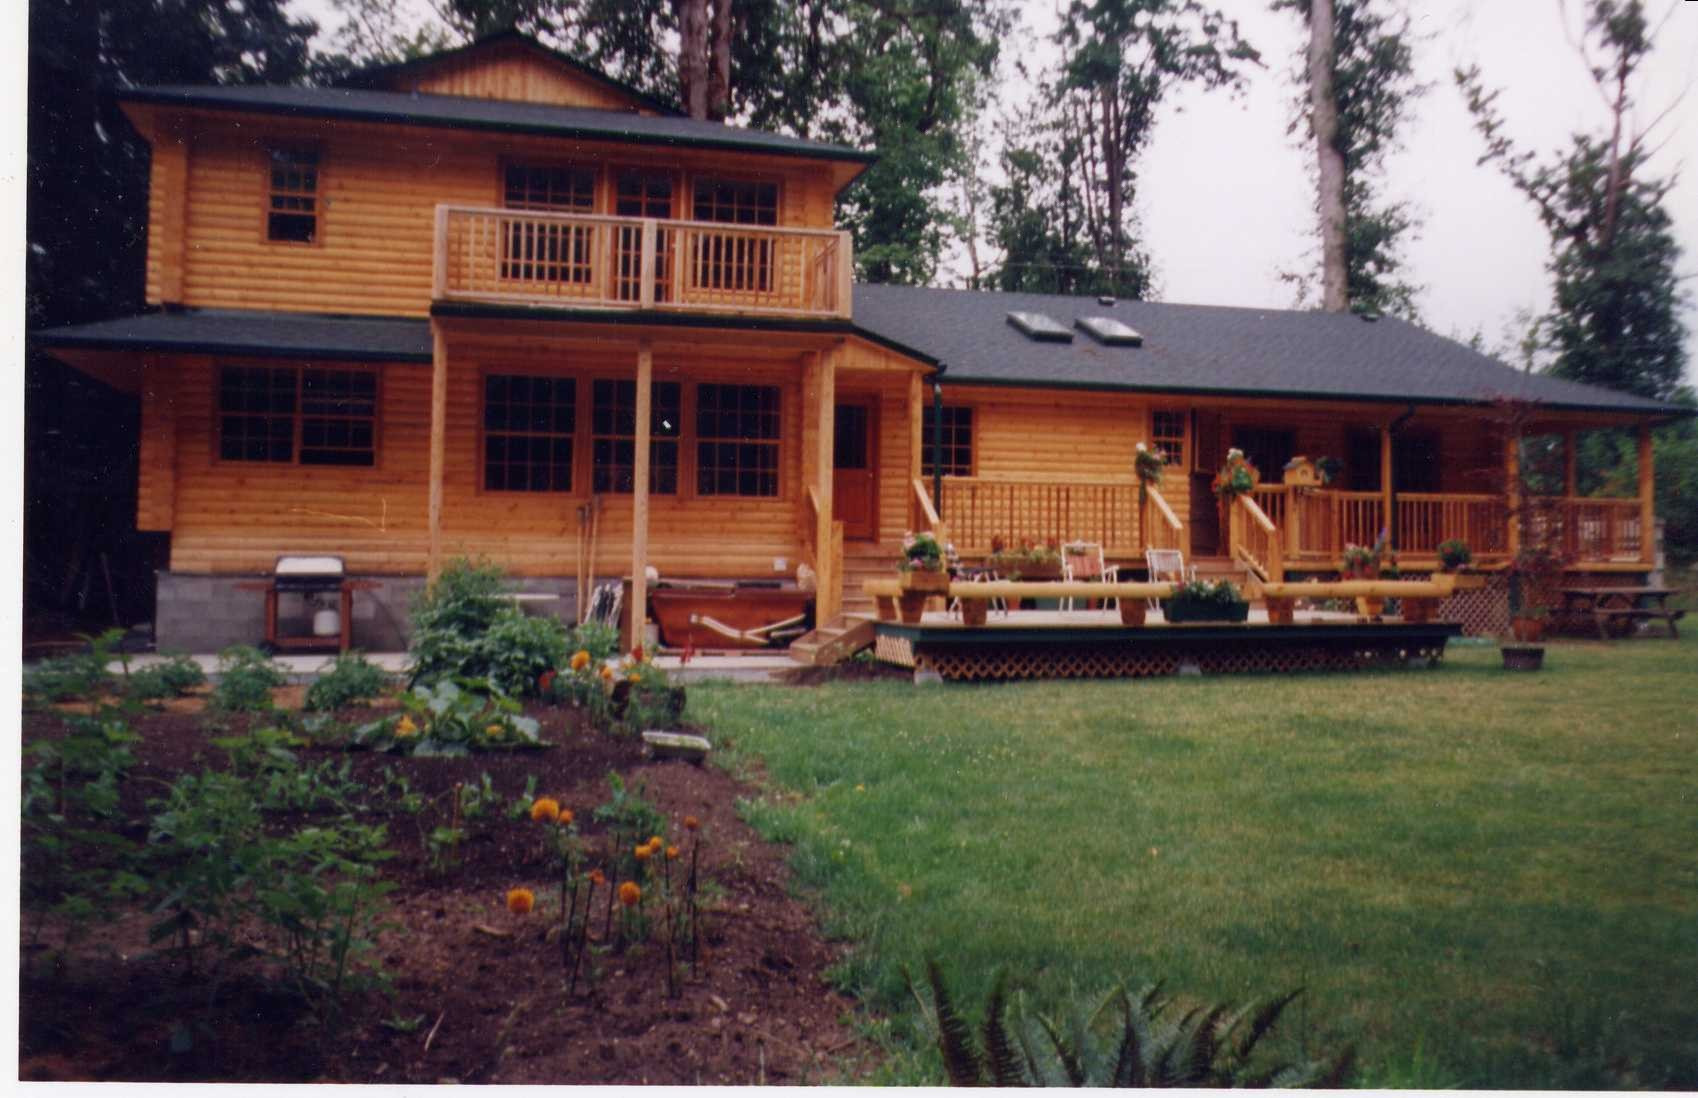 Two storey with open deck & covered porches